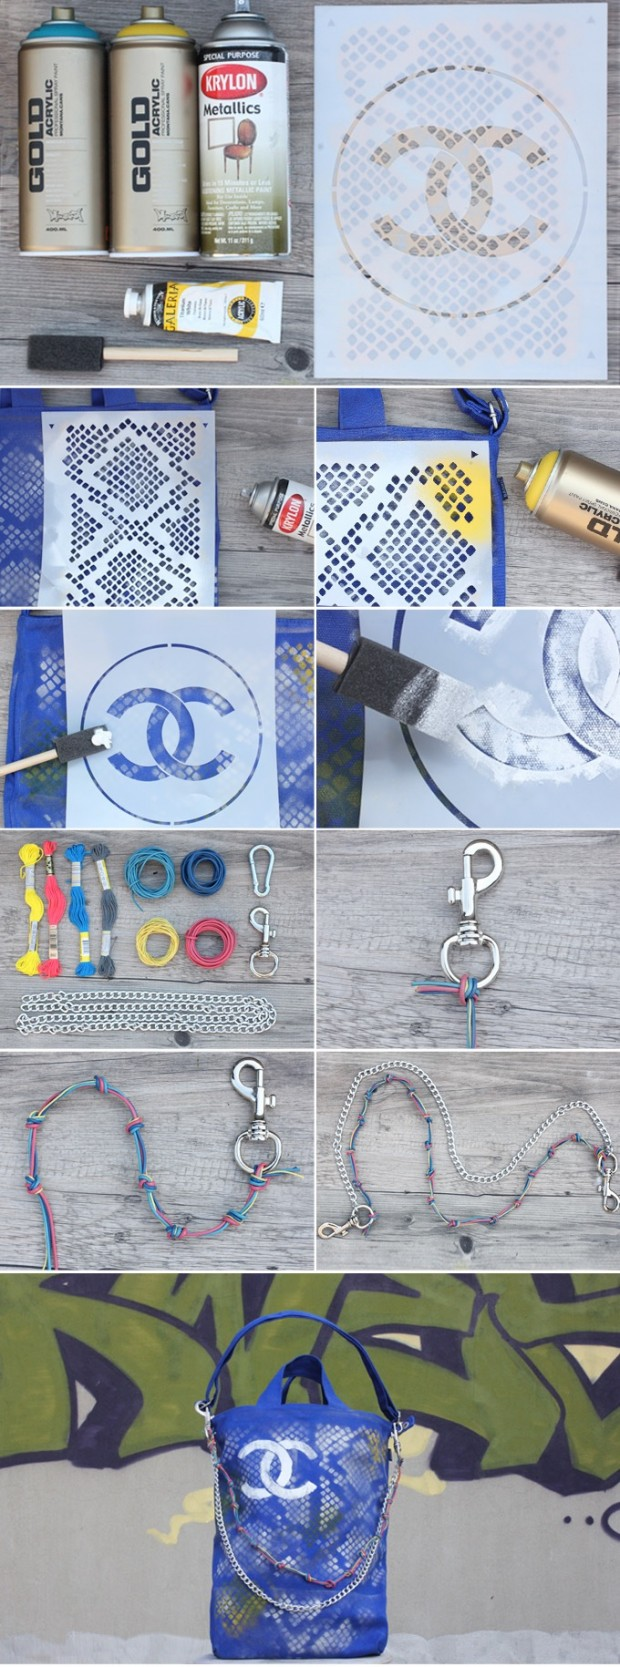 22 Brilliant DIY Fashion Projects for Unique Clothes and Accessories (19)